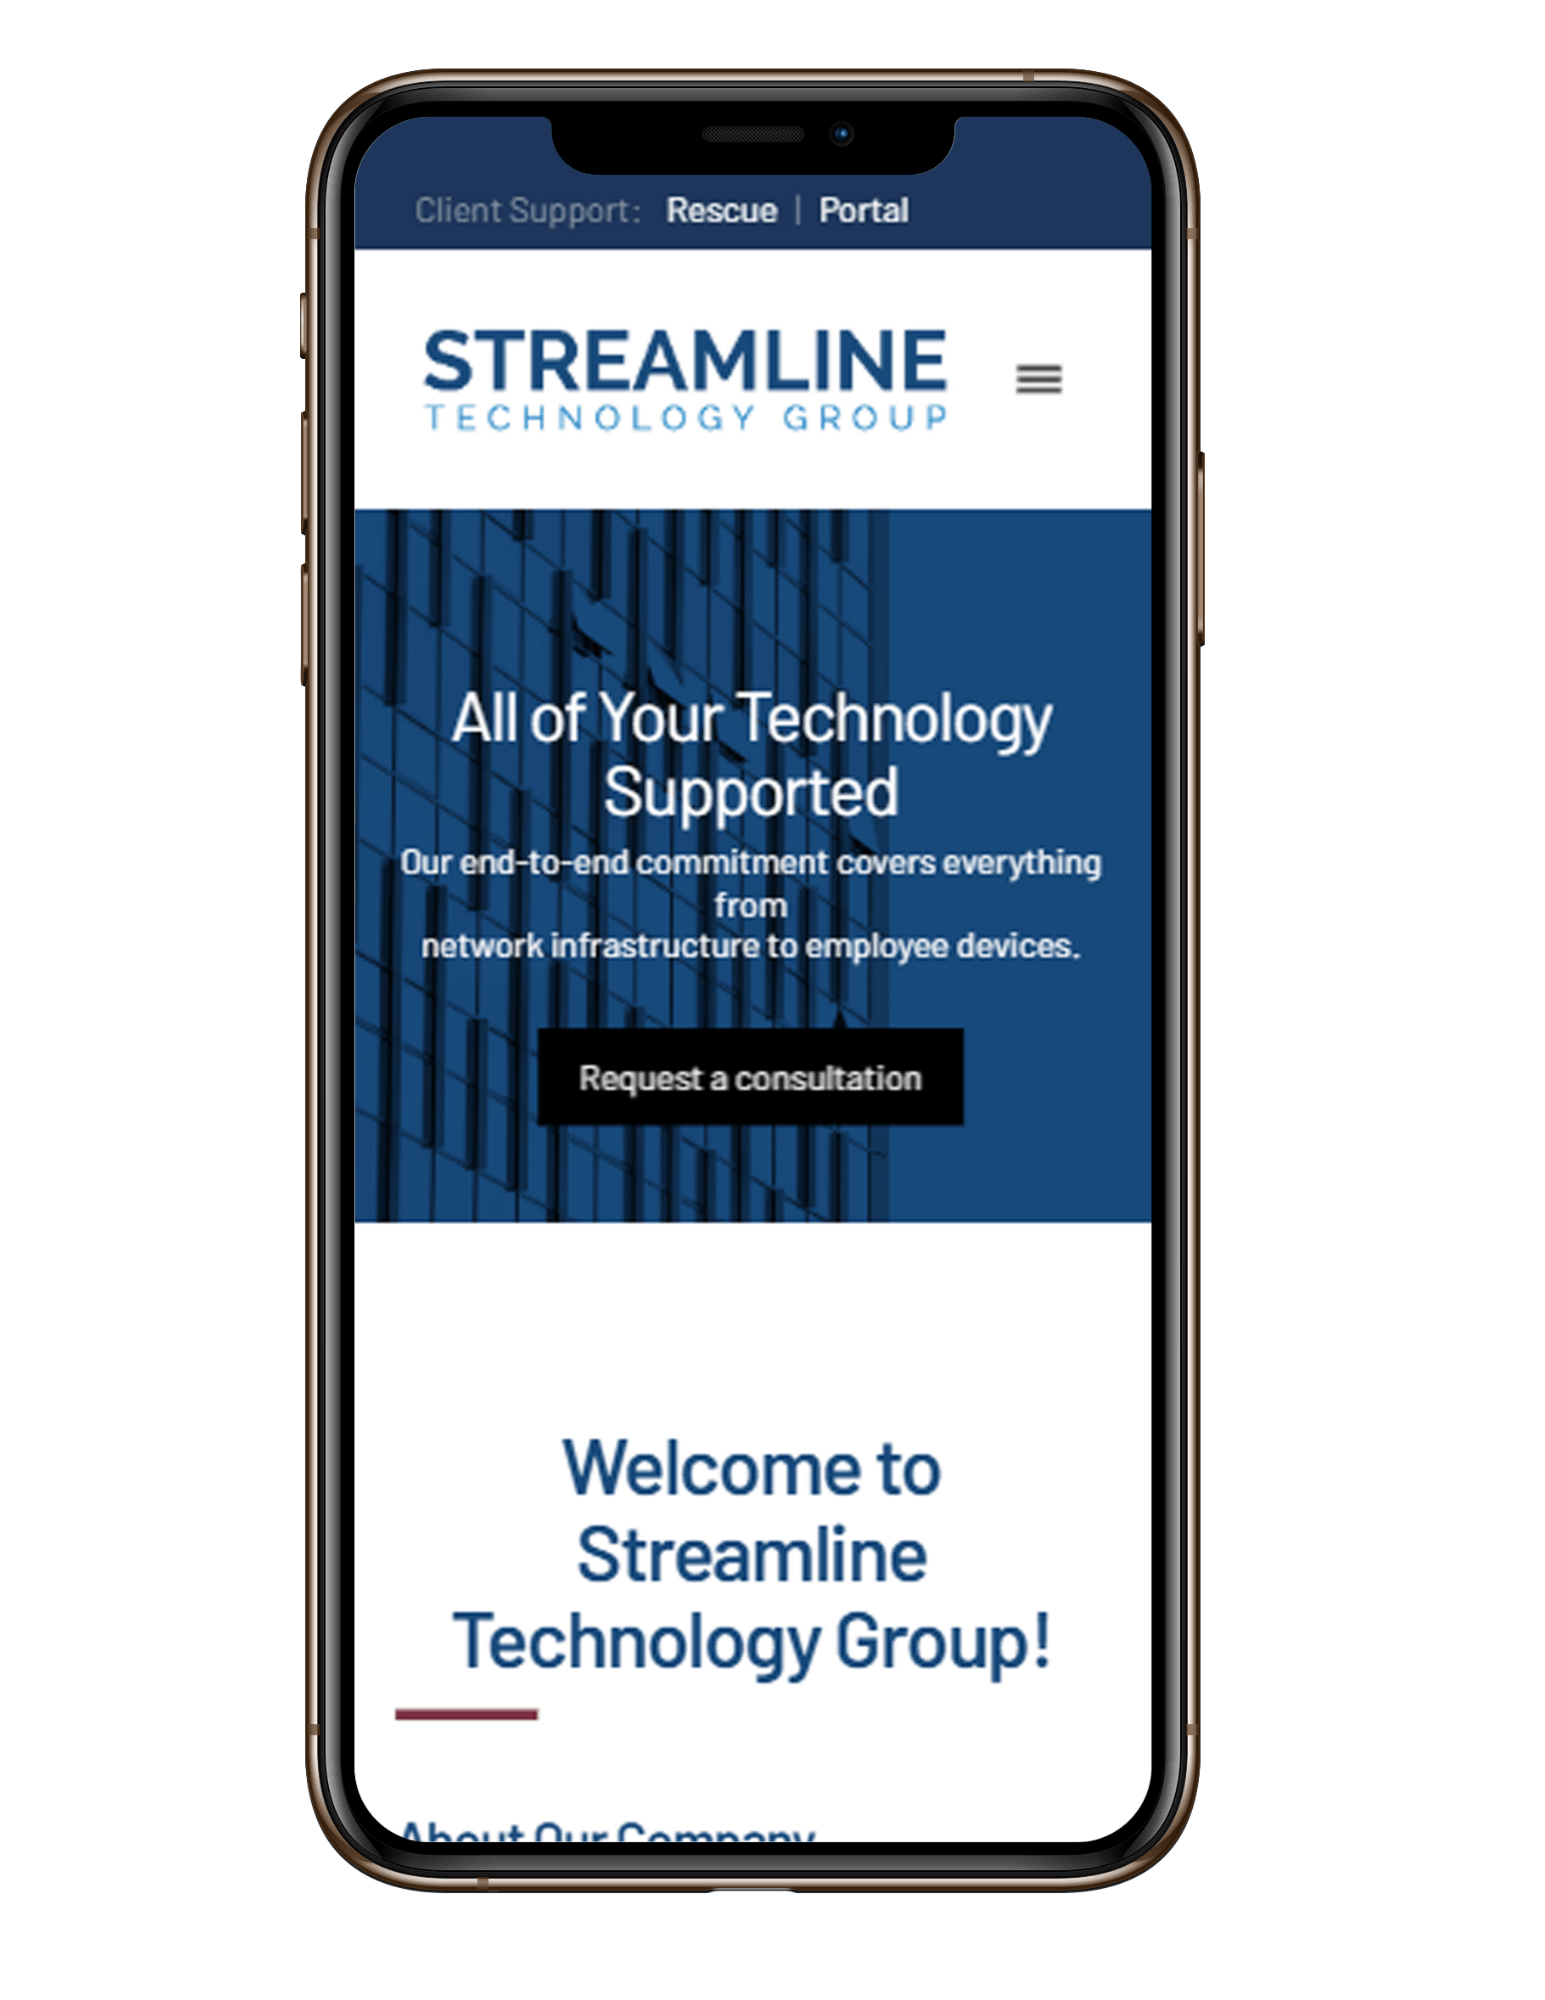 Streamline Technology Group